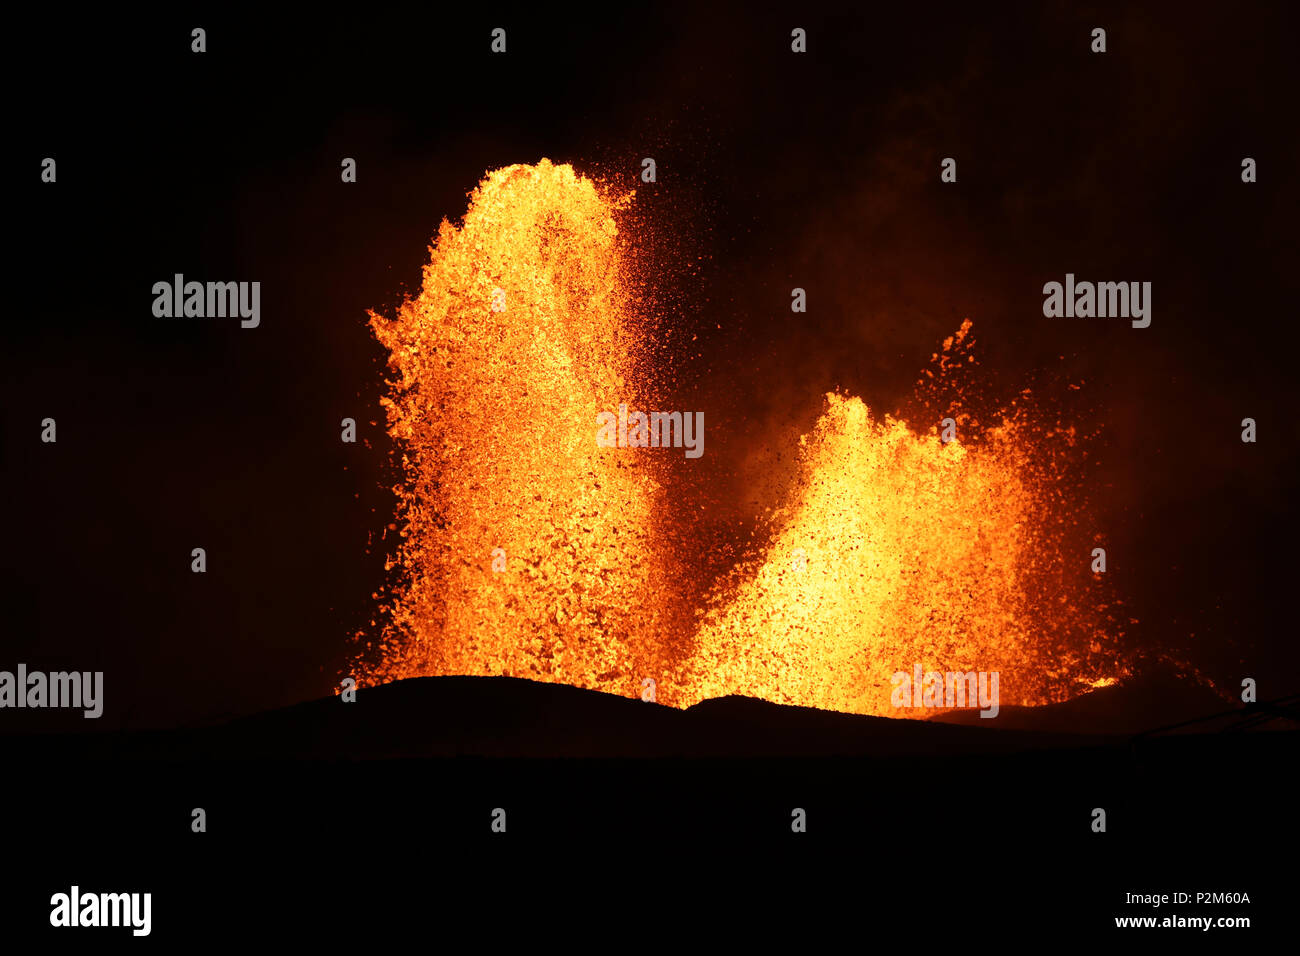 Lava fountain of Kilauea volcano in Hawaii at the end of May 2018, Fissure 8 - Stock Image